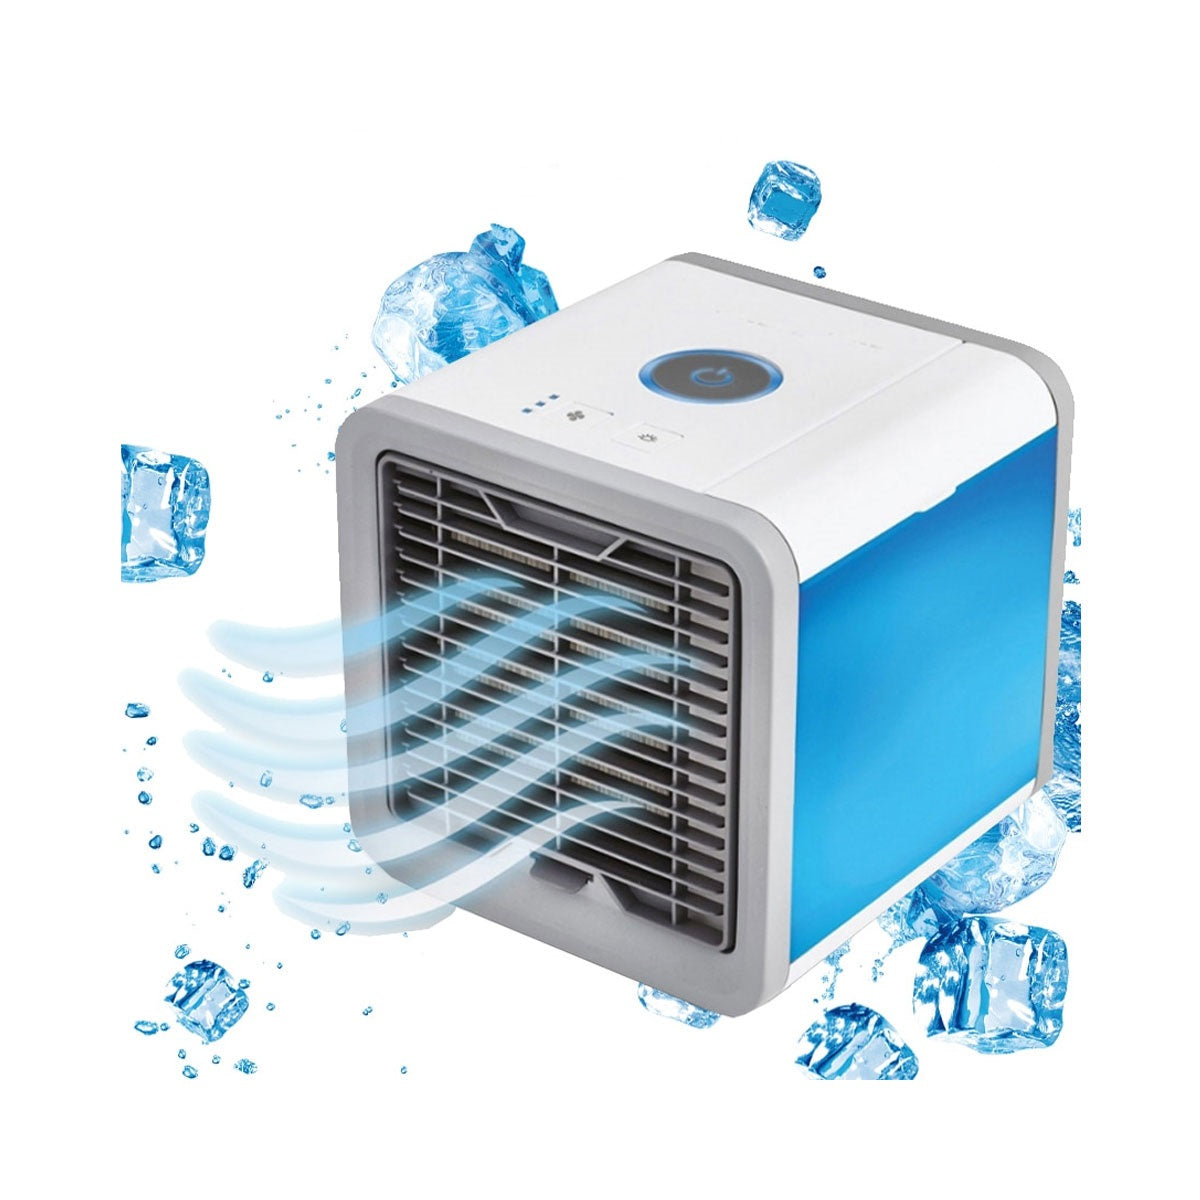 Freon Free Eco-Friendly Led Portable Air Conditioner With Noiseless Fan